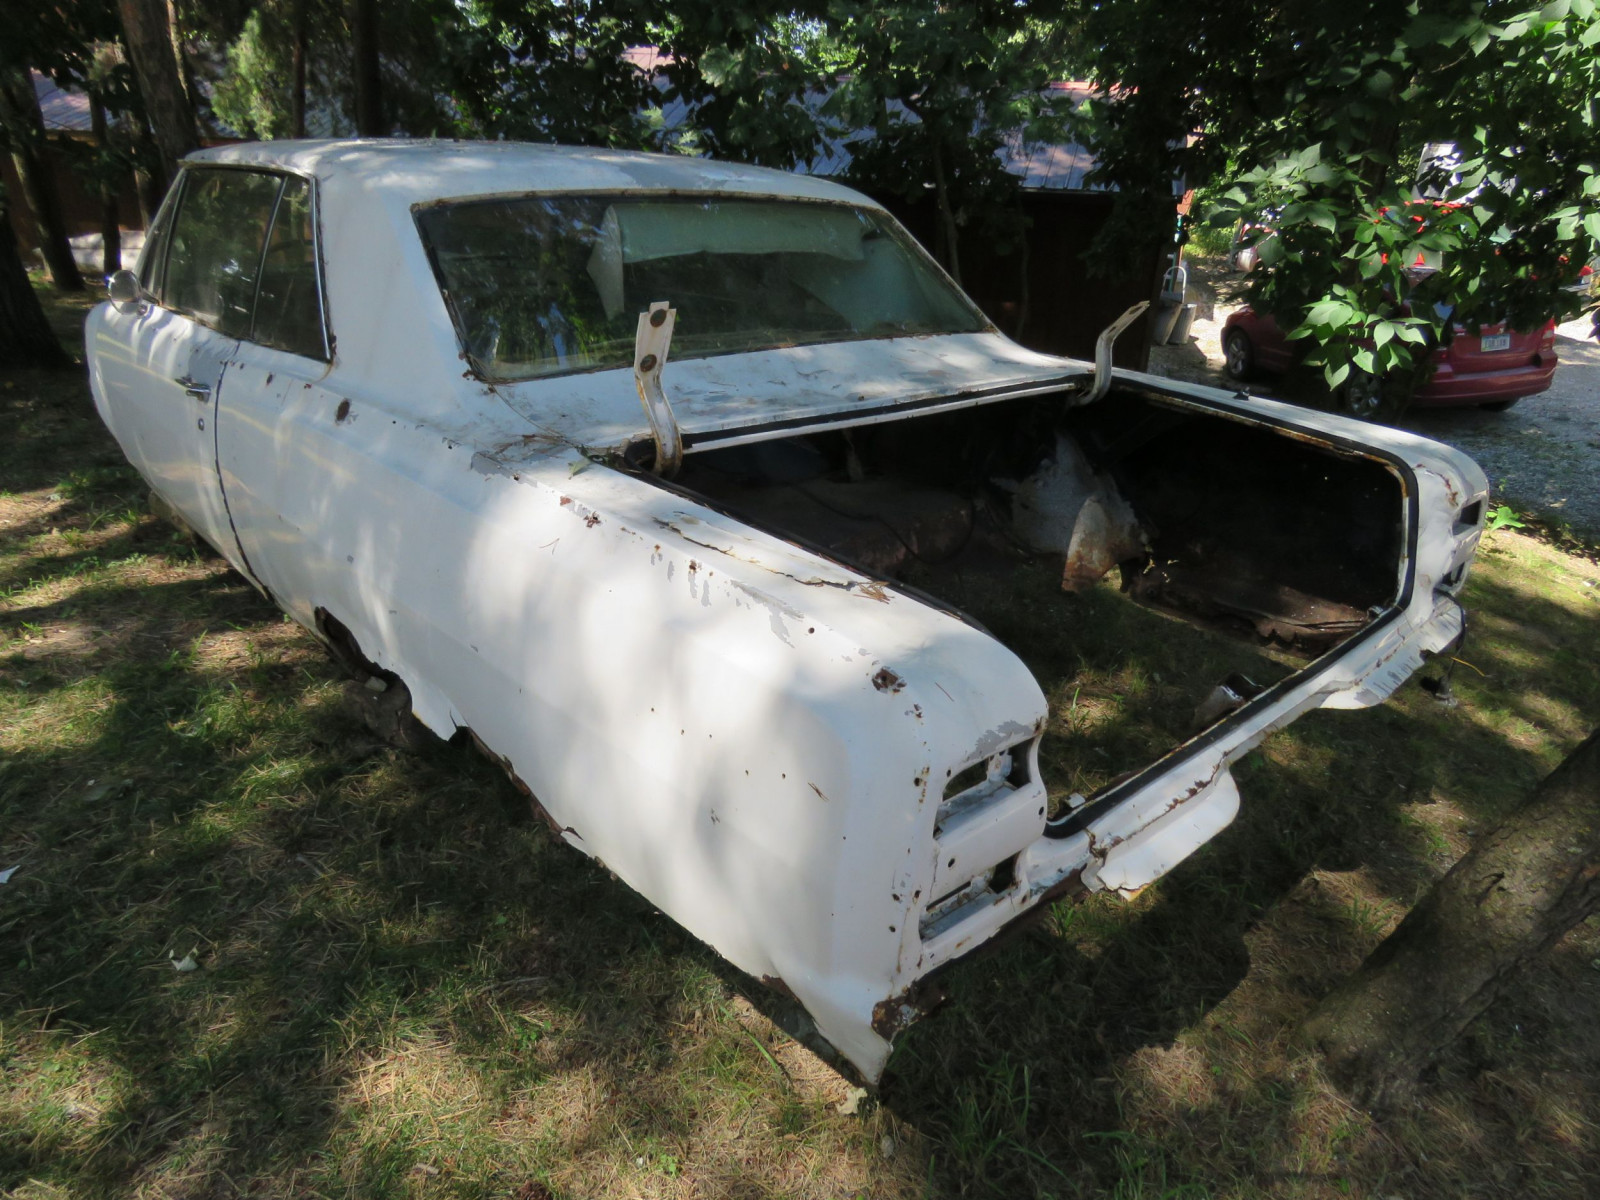 1964 Chevrolet Chevelle SS Project - Image 7